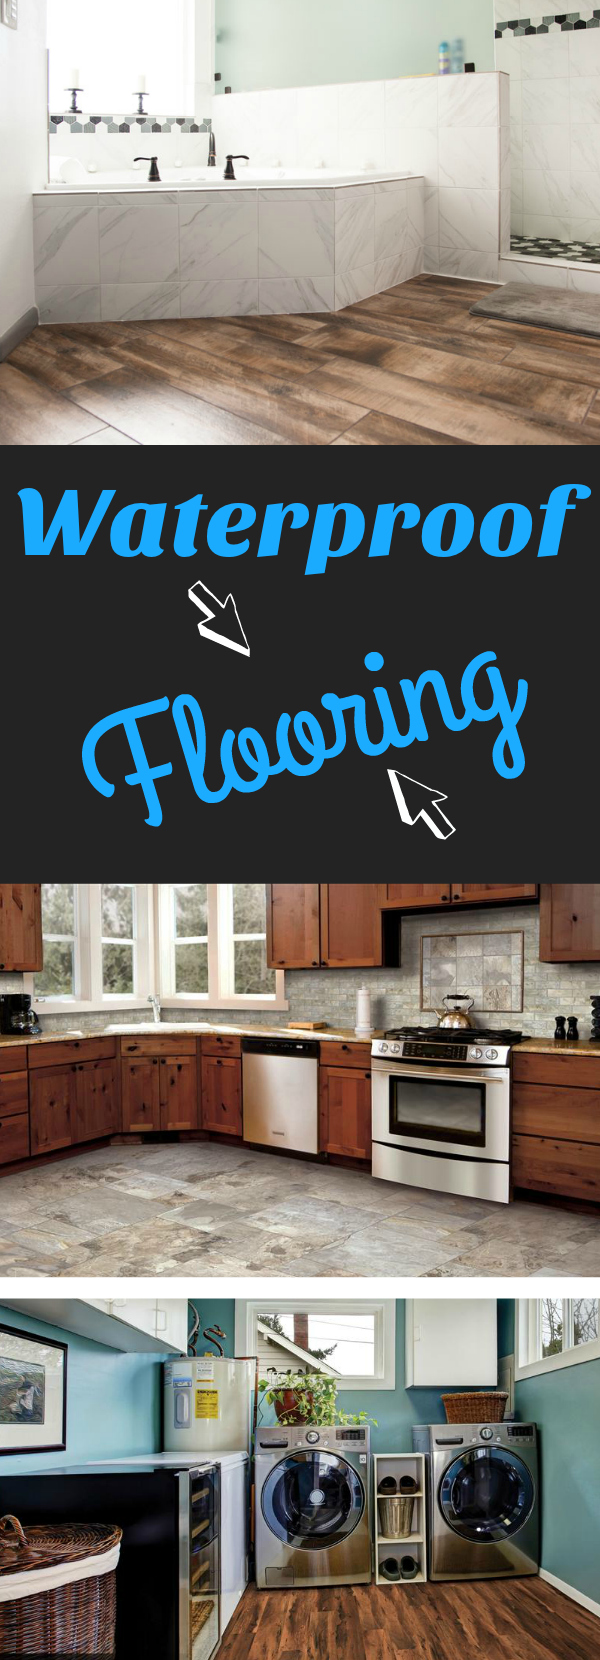 The best waterproof flooring options flooringinc blog waterproof flooring the newest craze on the market is flooring that is 100 waterproof dailygadgetfo Gallery